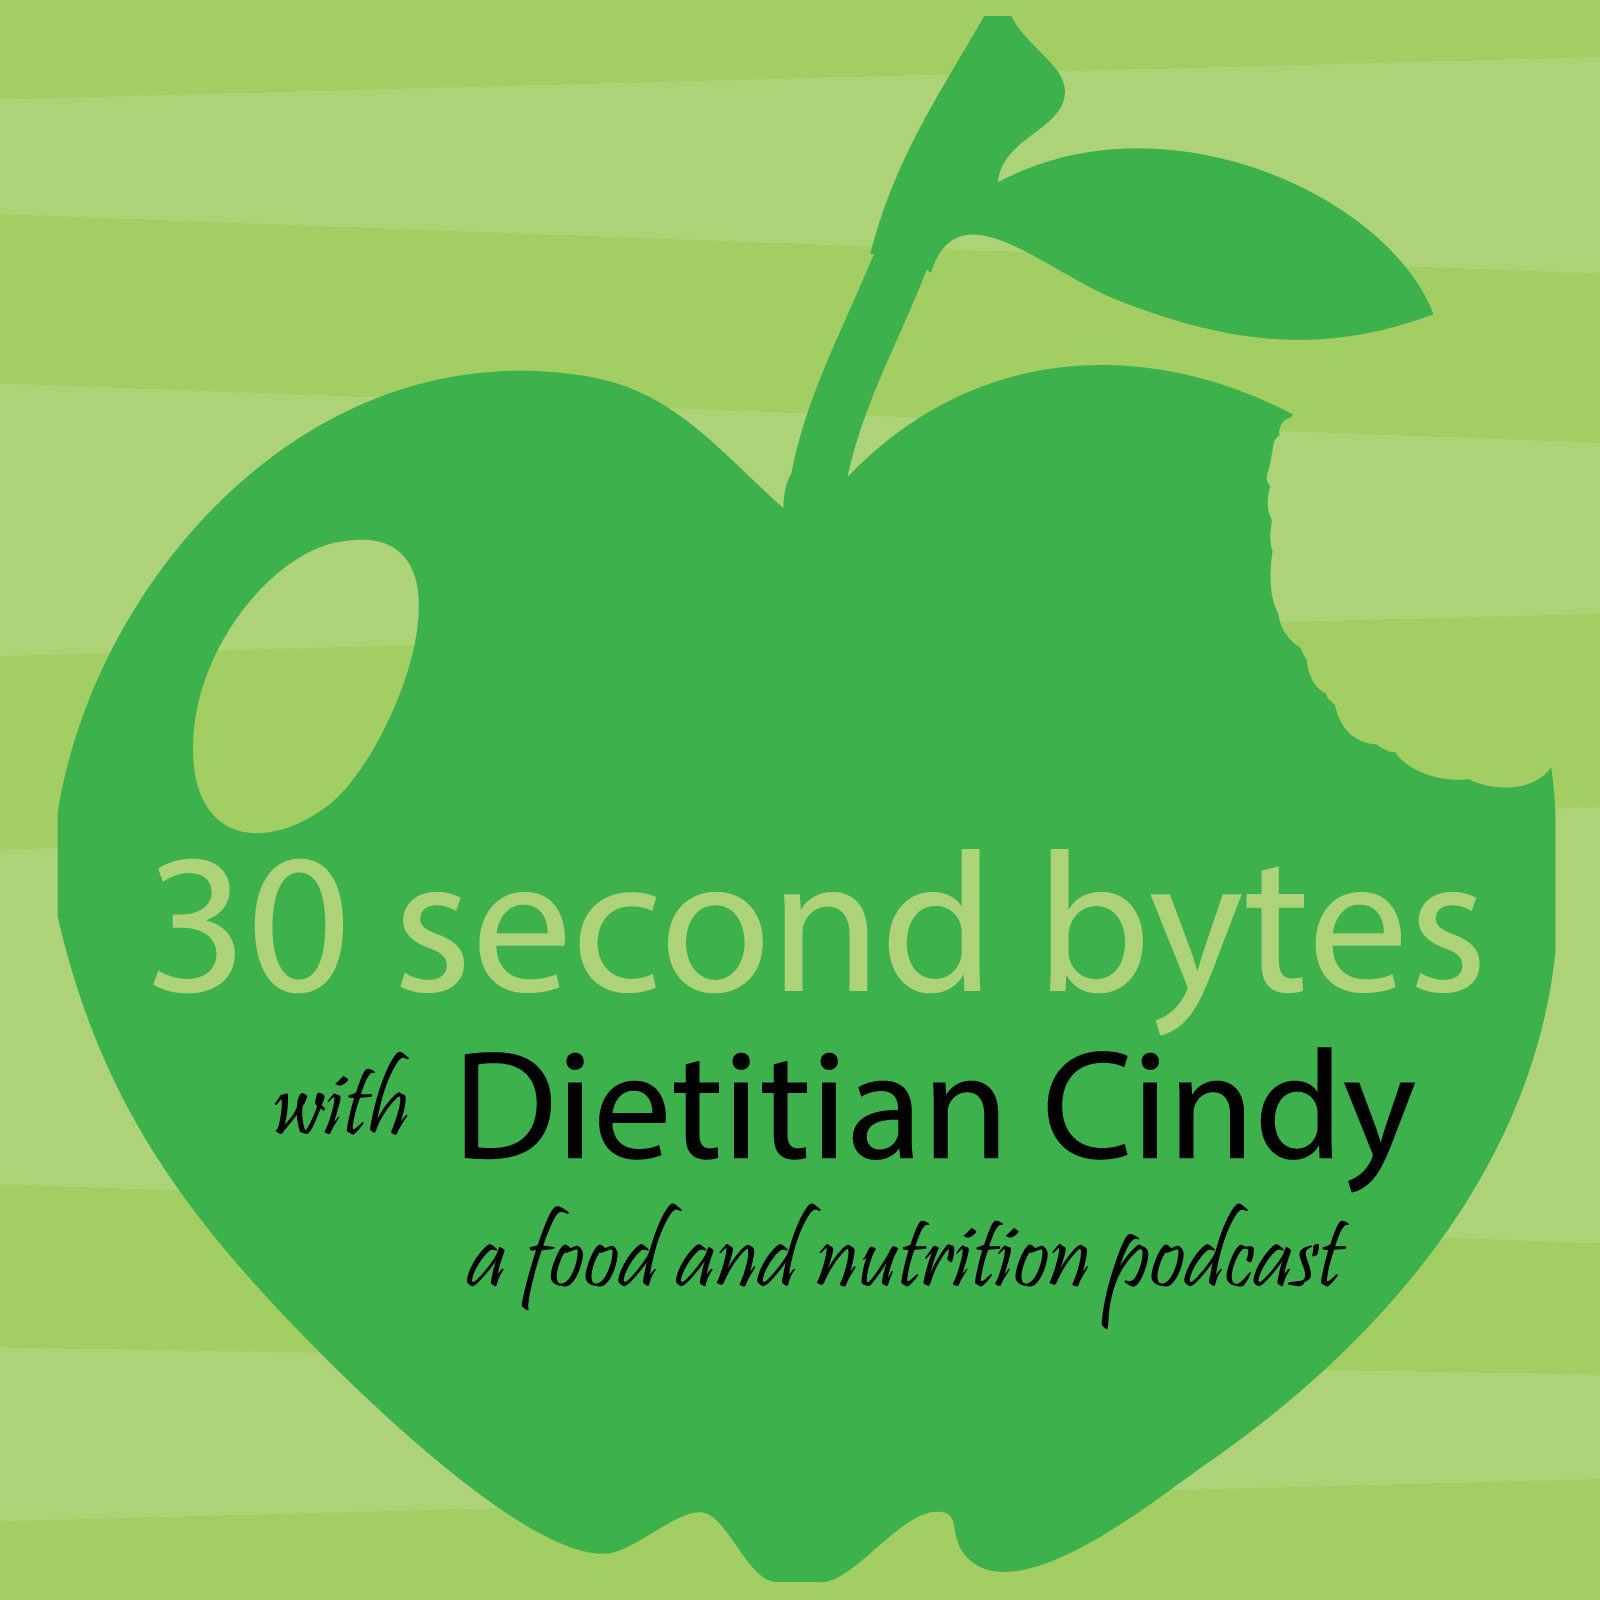 30 Second Bytes with Dietitian Cindy